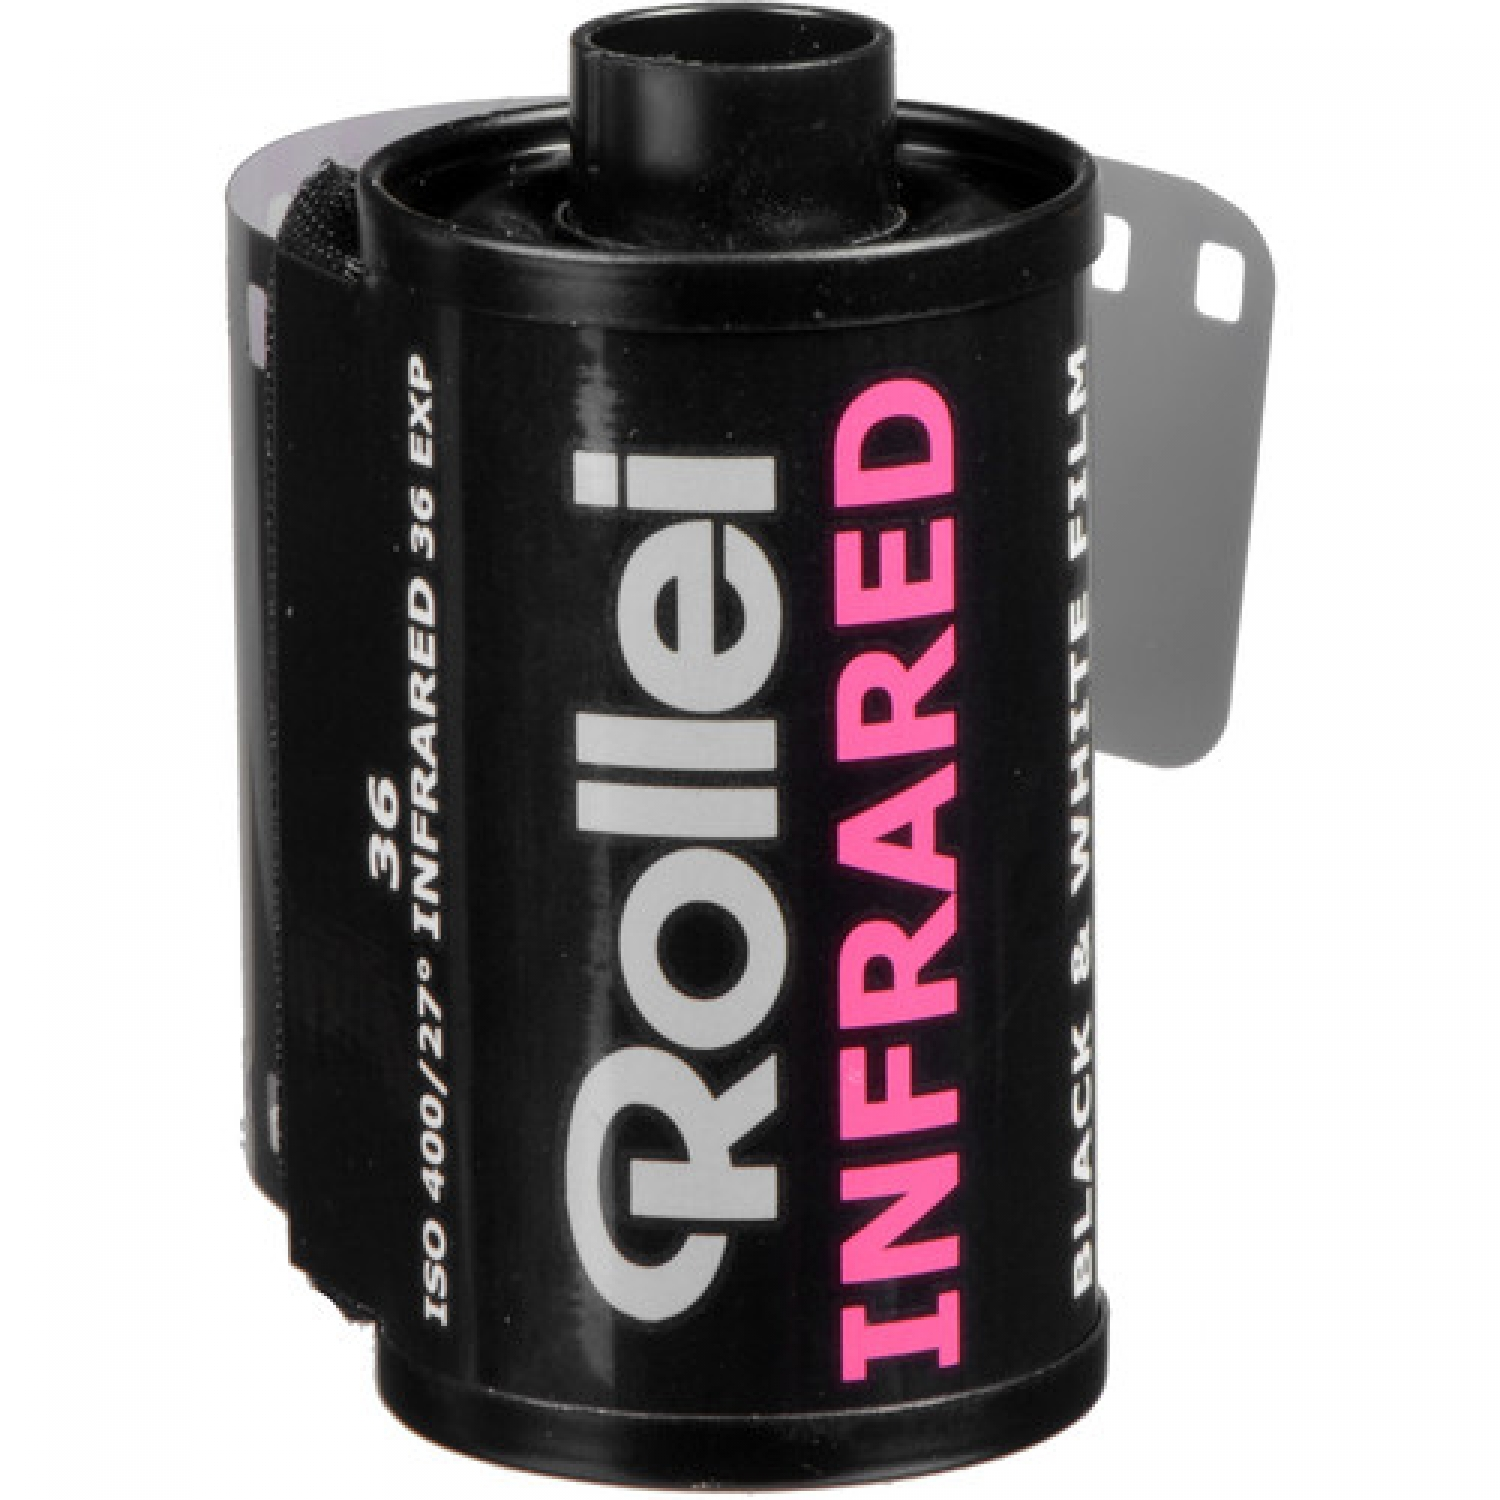 Rollei Infrared 400 (35mm) Black and White Negative Film Single